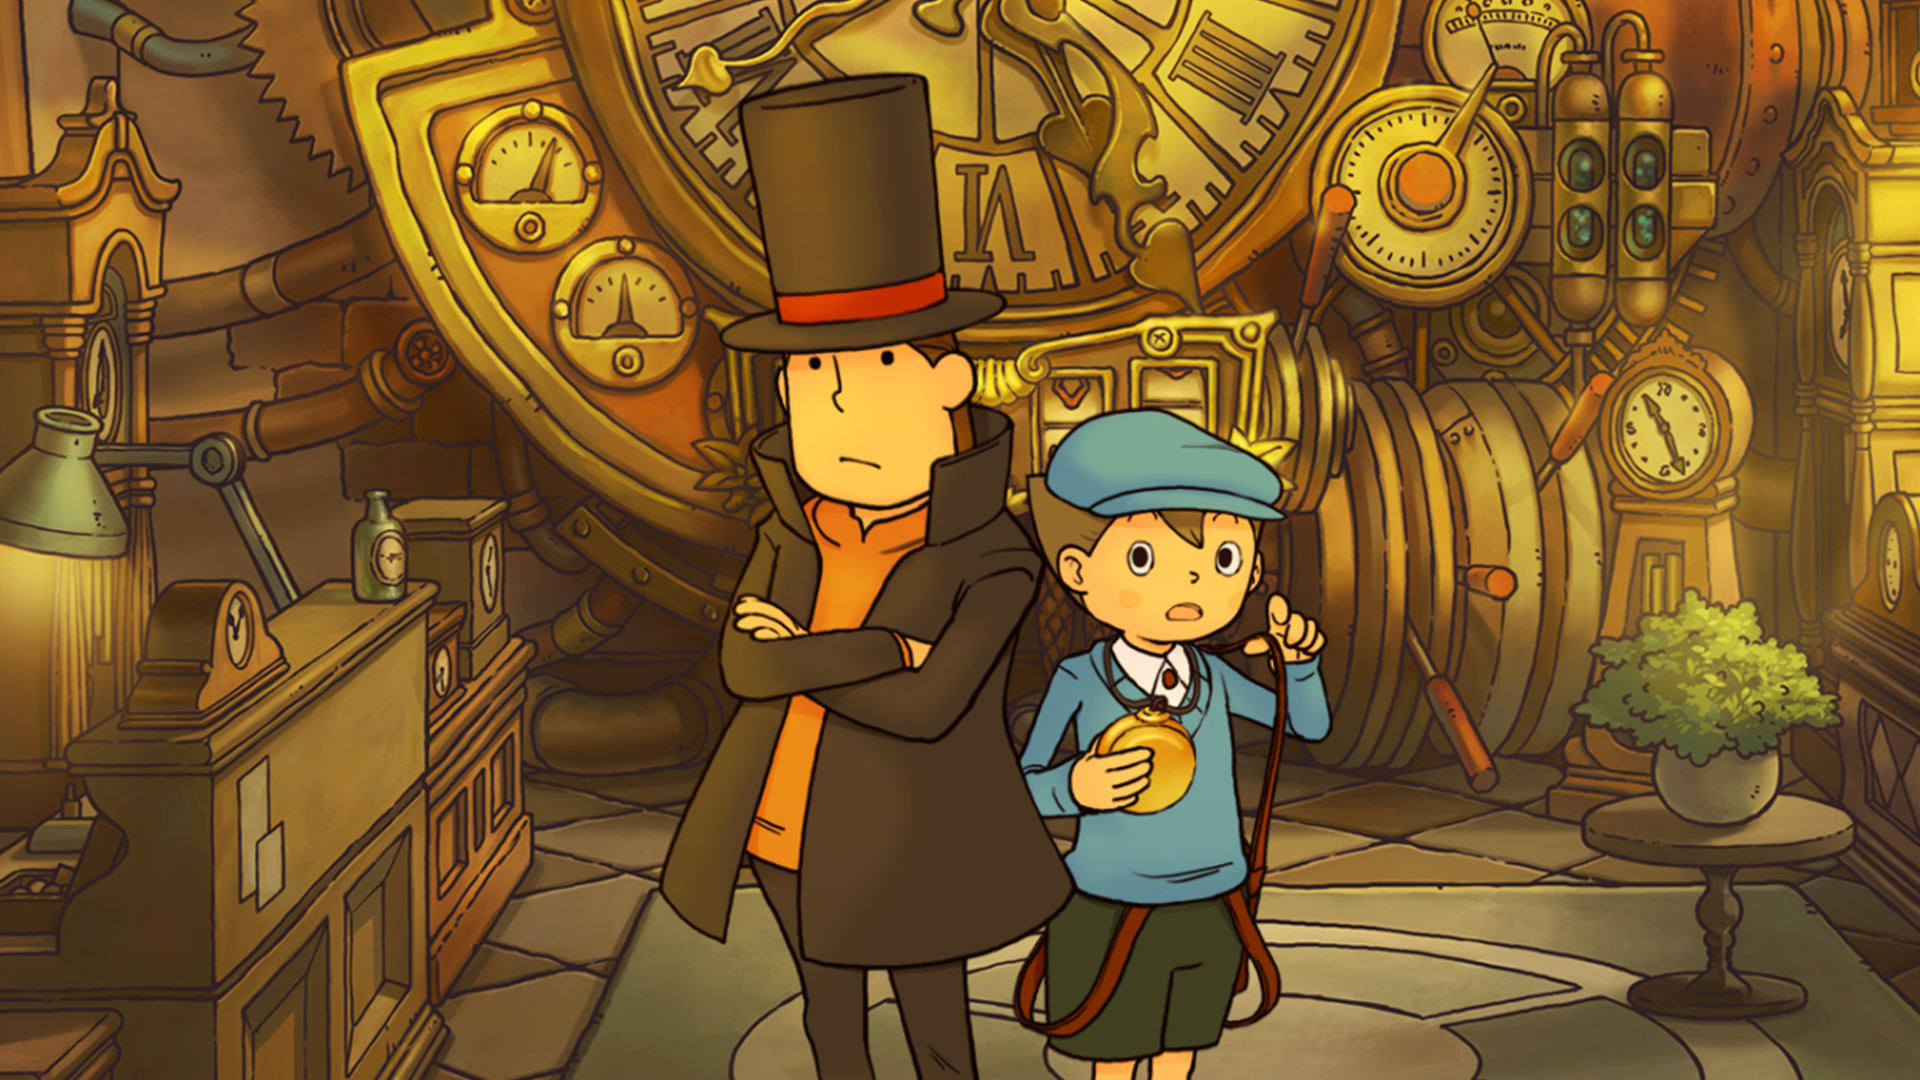 Professor Layton and the Curious Village